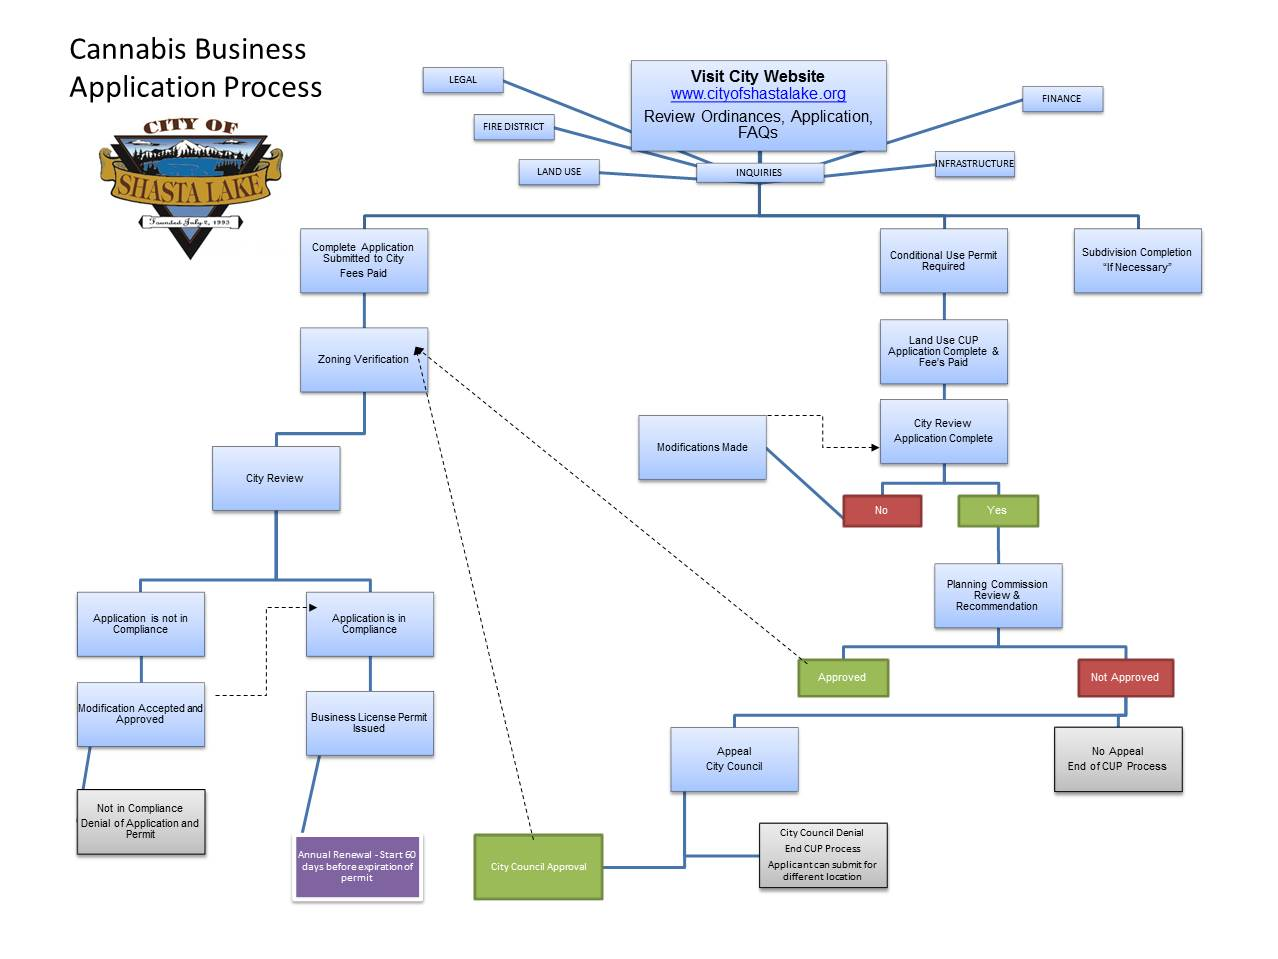 Cannabis Business Application Flow Chart.jpg